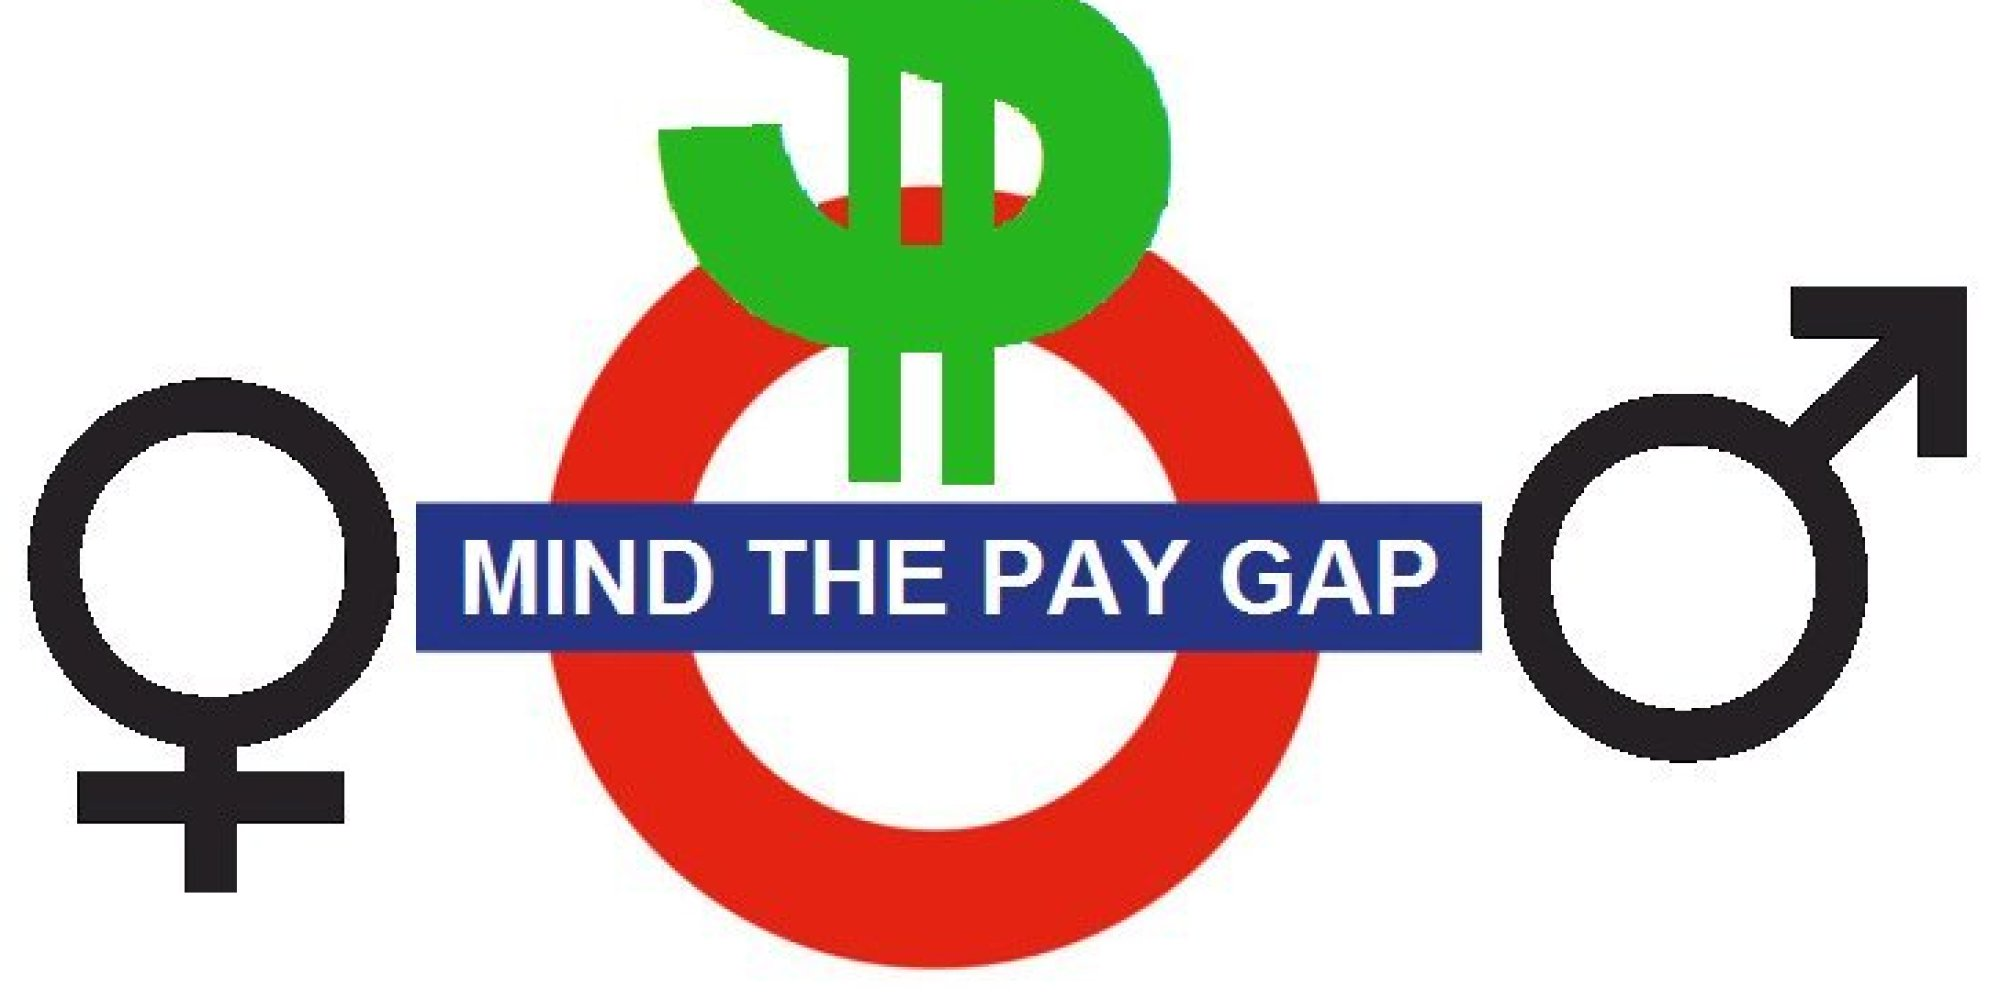 gender pay gap essay Read this essay on gender wage gap come browse our large digital warehouse of free sample essays get the knowledge you need in order to pass your classes and more.